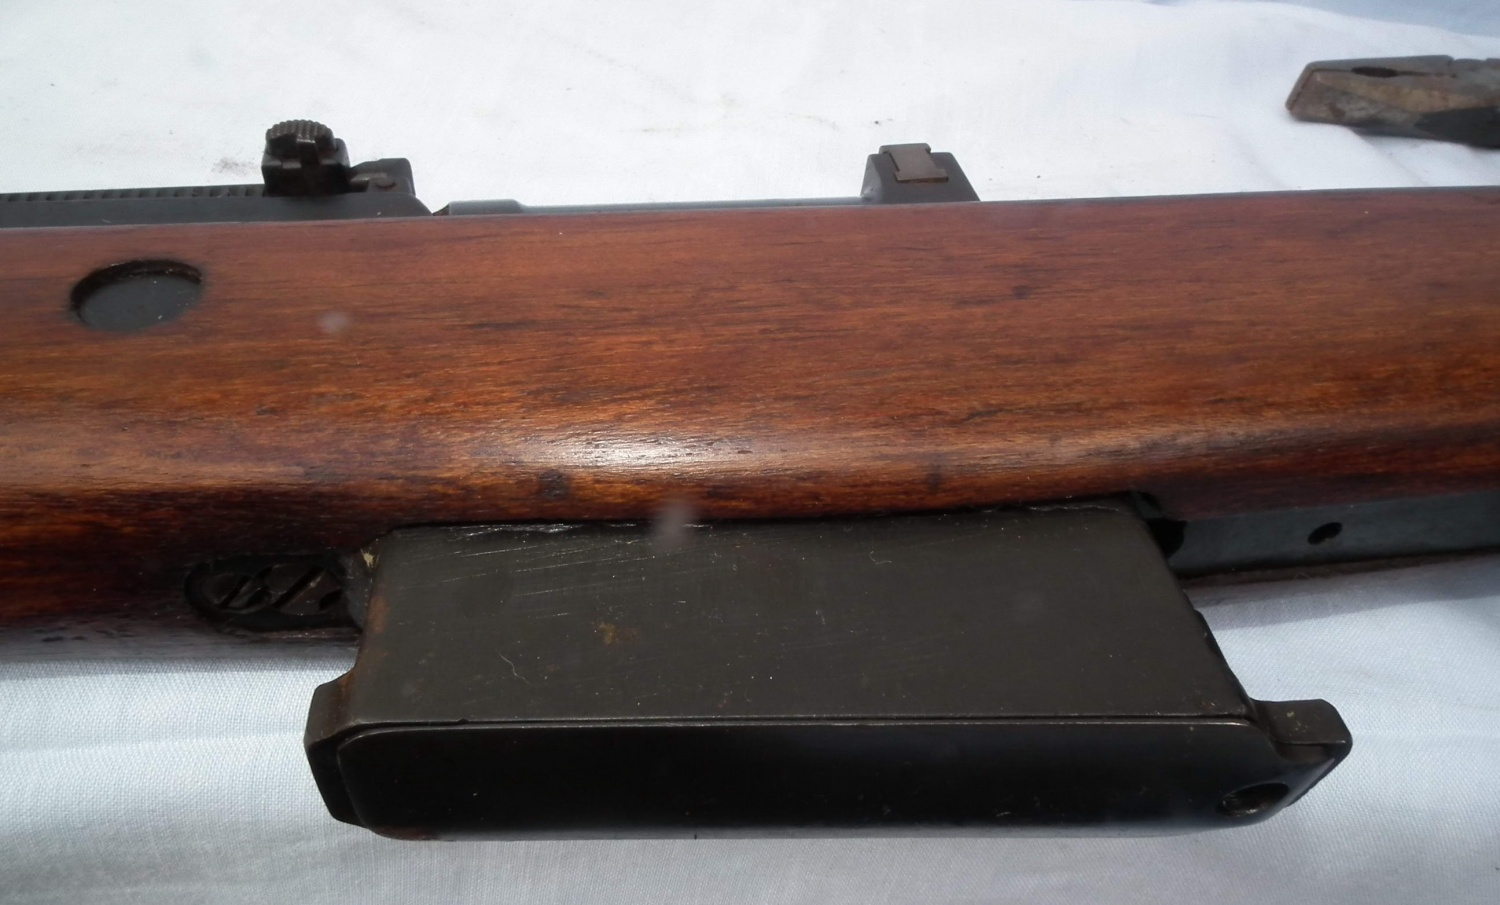 The 10-round magazine fitted to the AGR prototype is flat-sided, but the original G43 magazines had vertical reinforcing ribs.